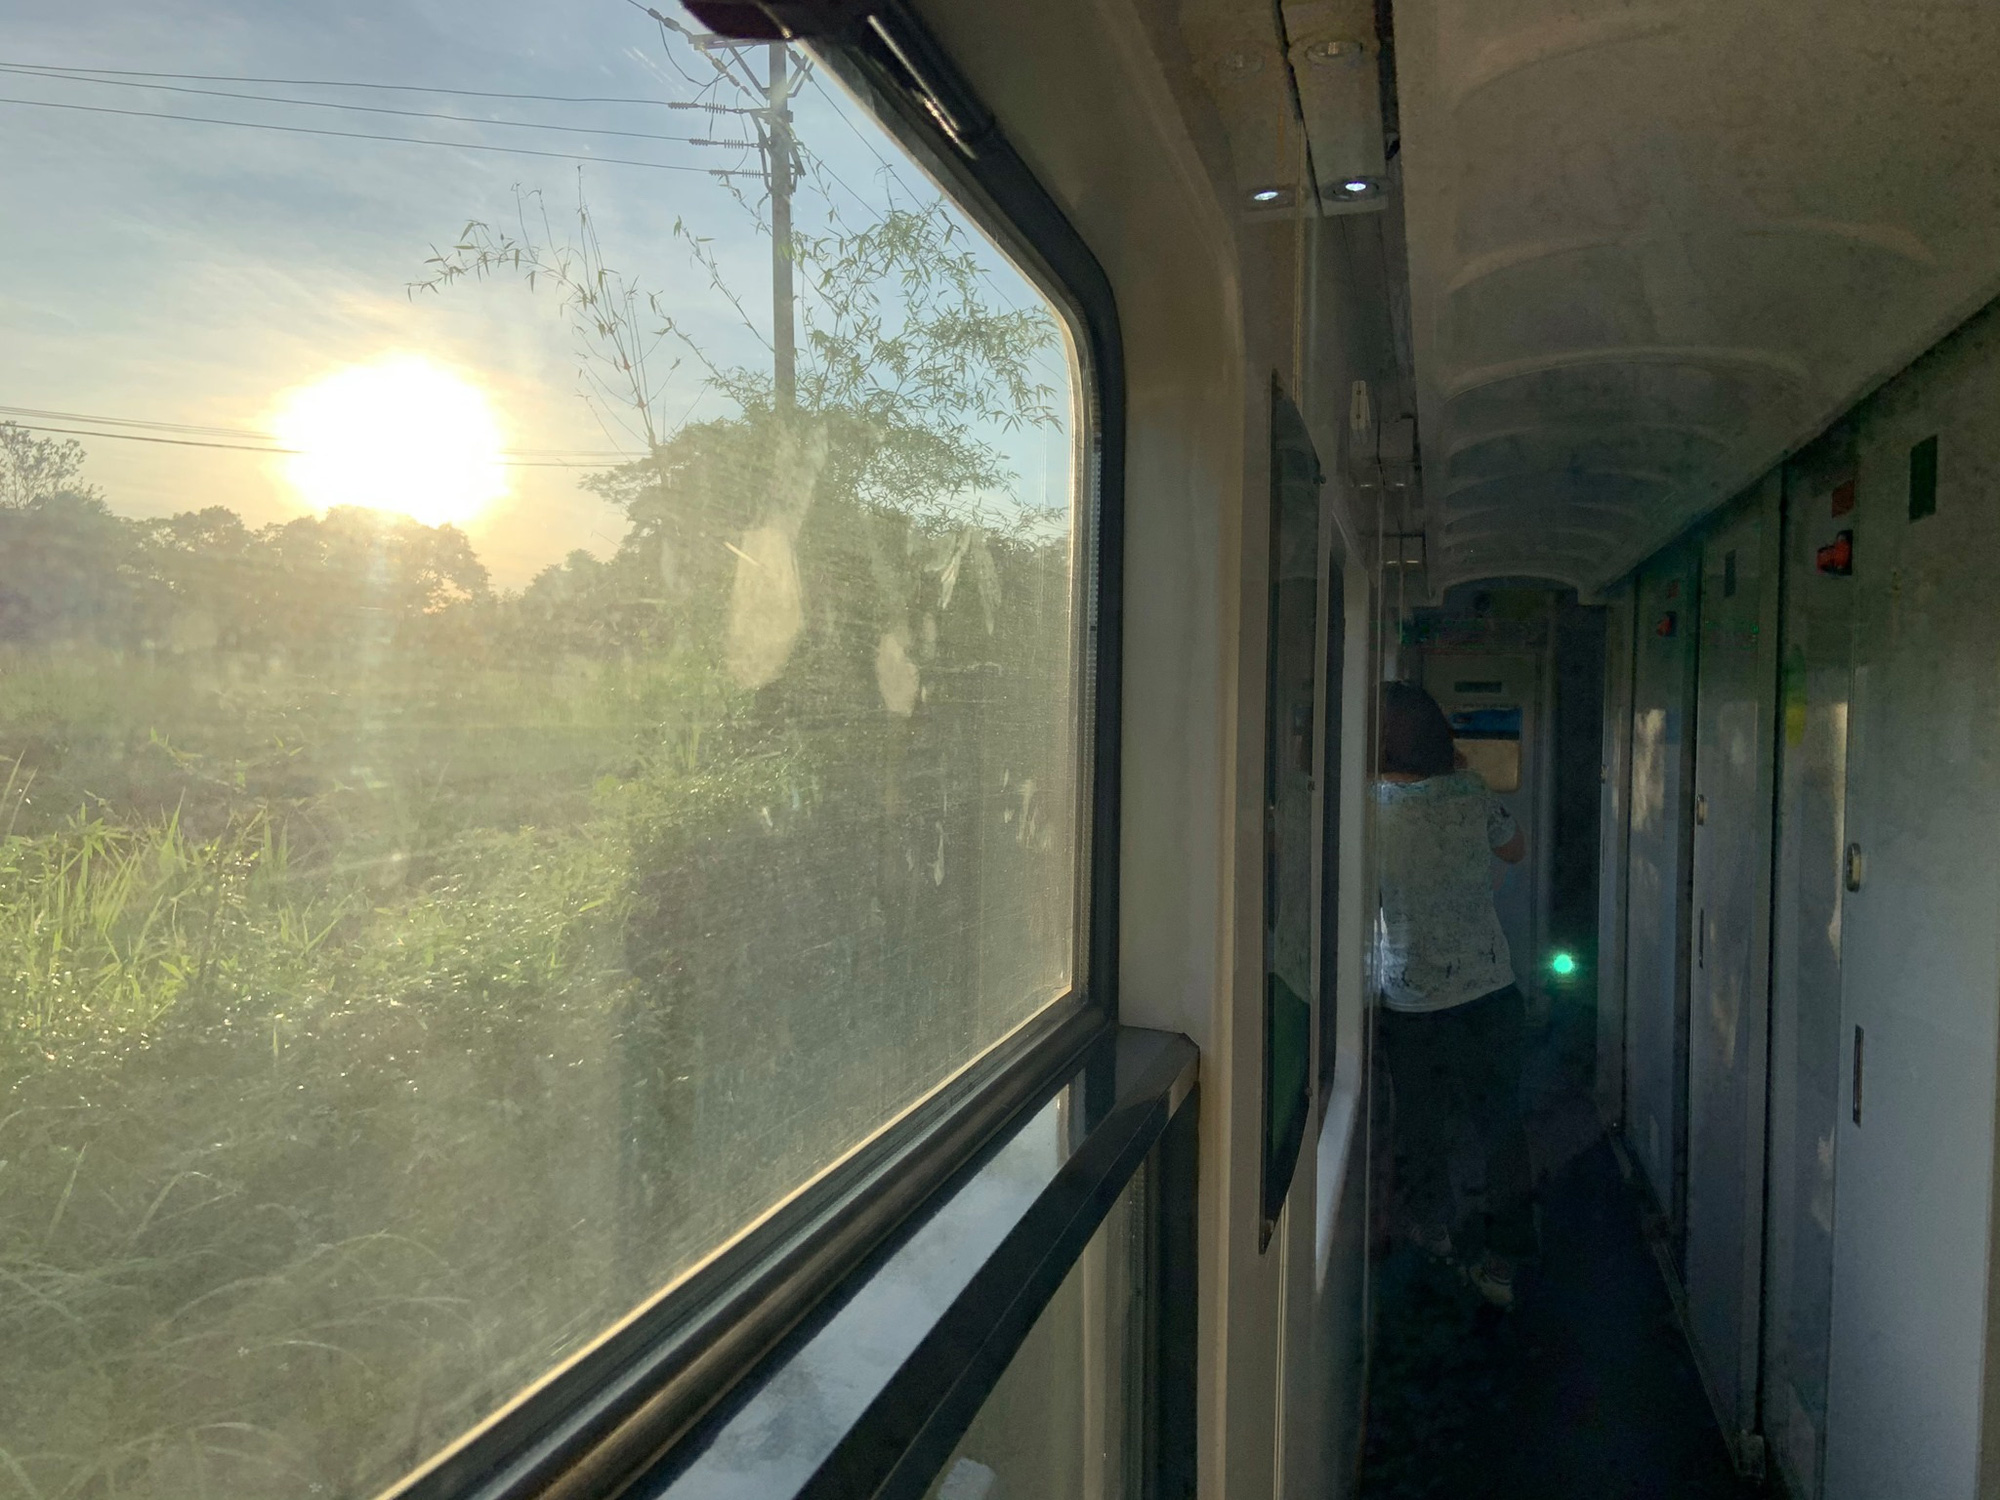 The early dawn is captured in this photo taken on a train from Hanoi to Quang Binh Province, Vietnam.